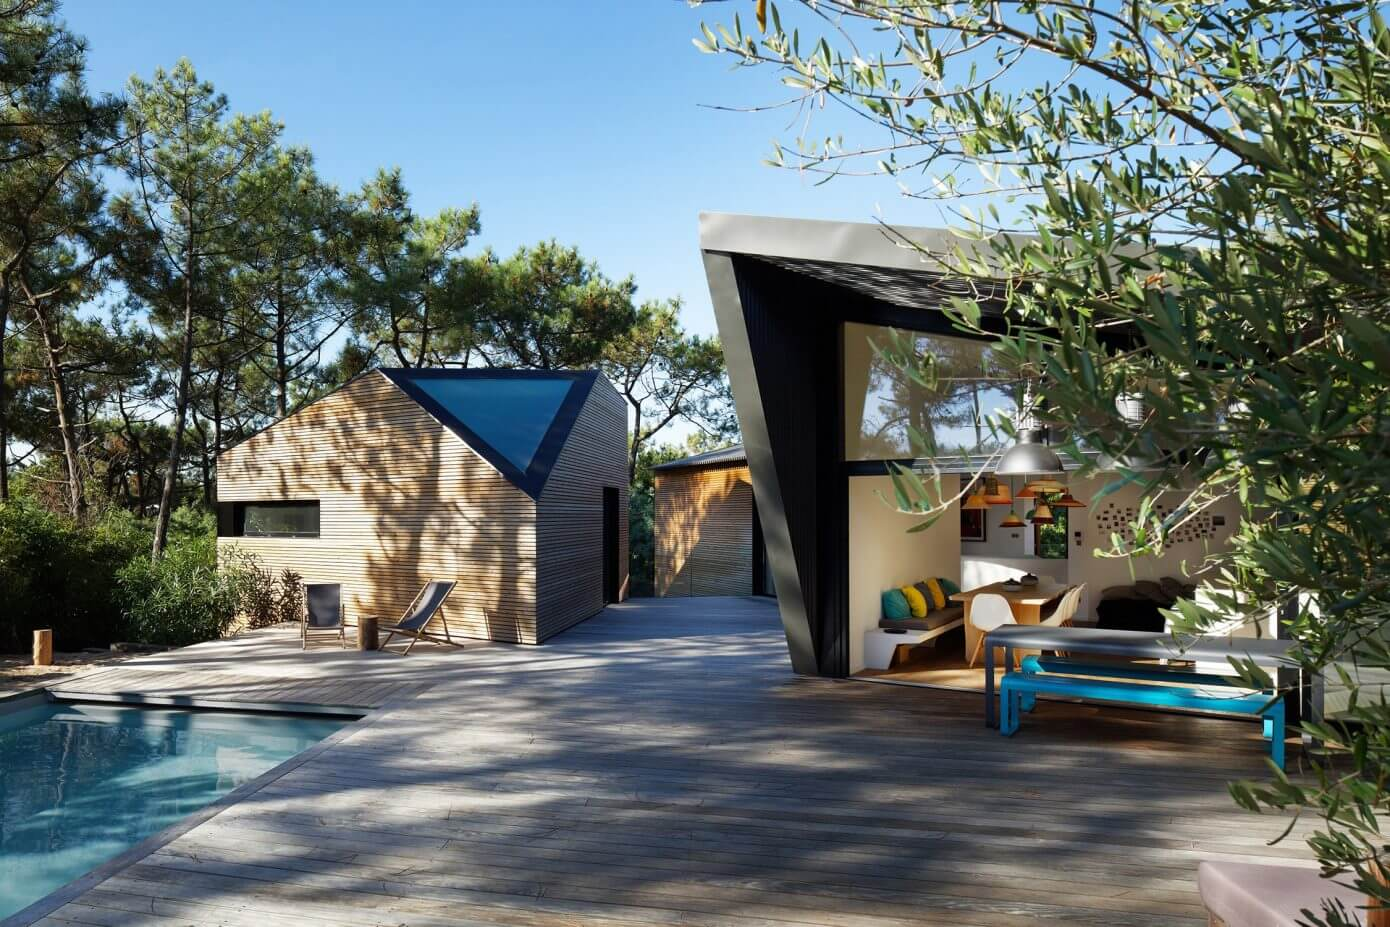 Holiday House in Cap Ferret by Atelier Du Pont